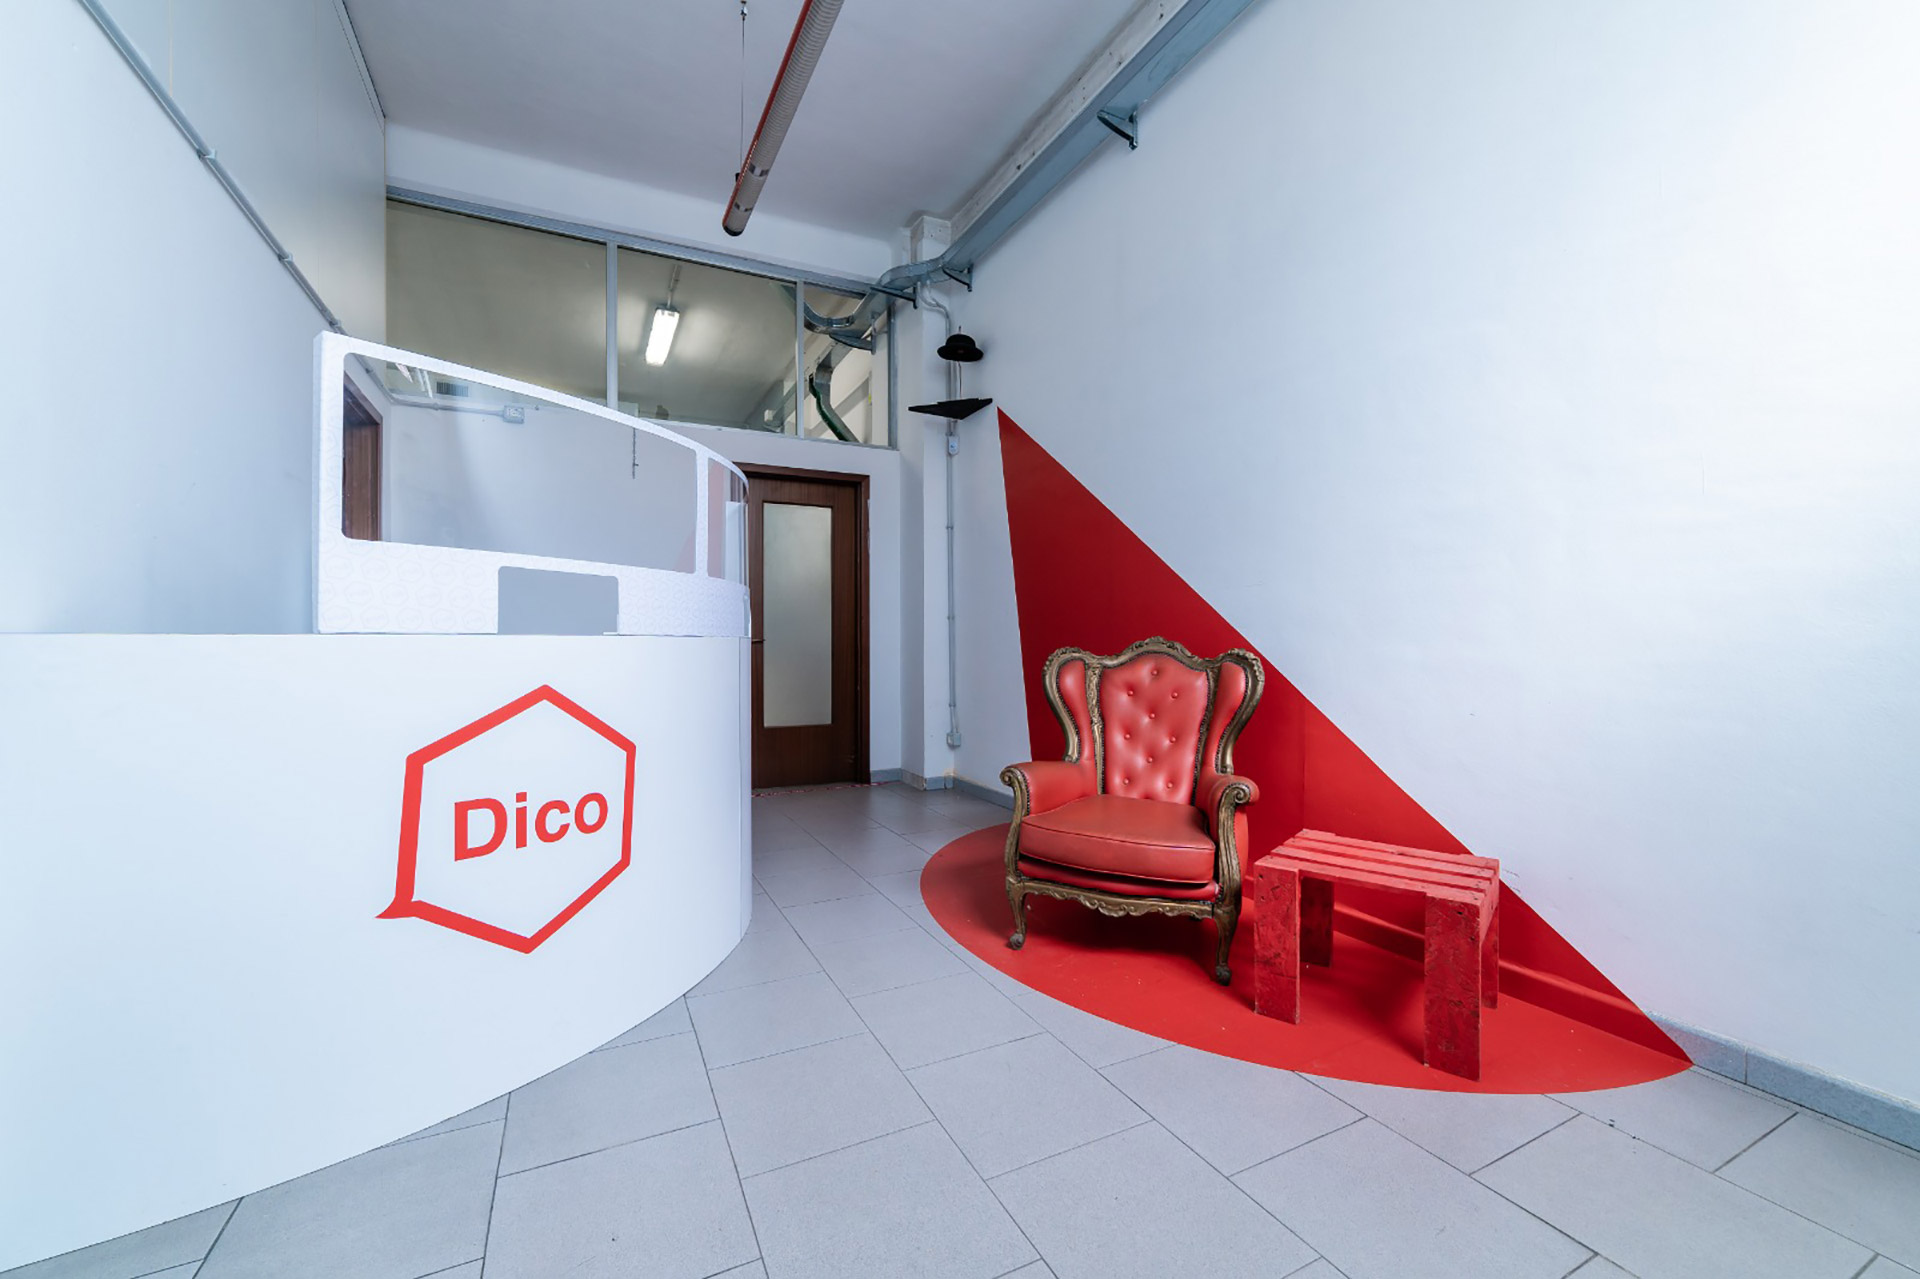 Dico – Different Communication